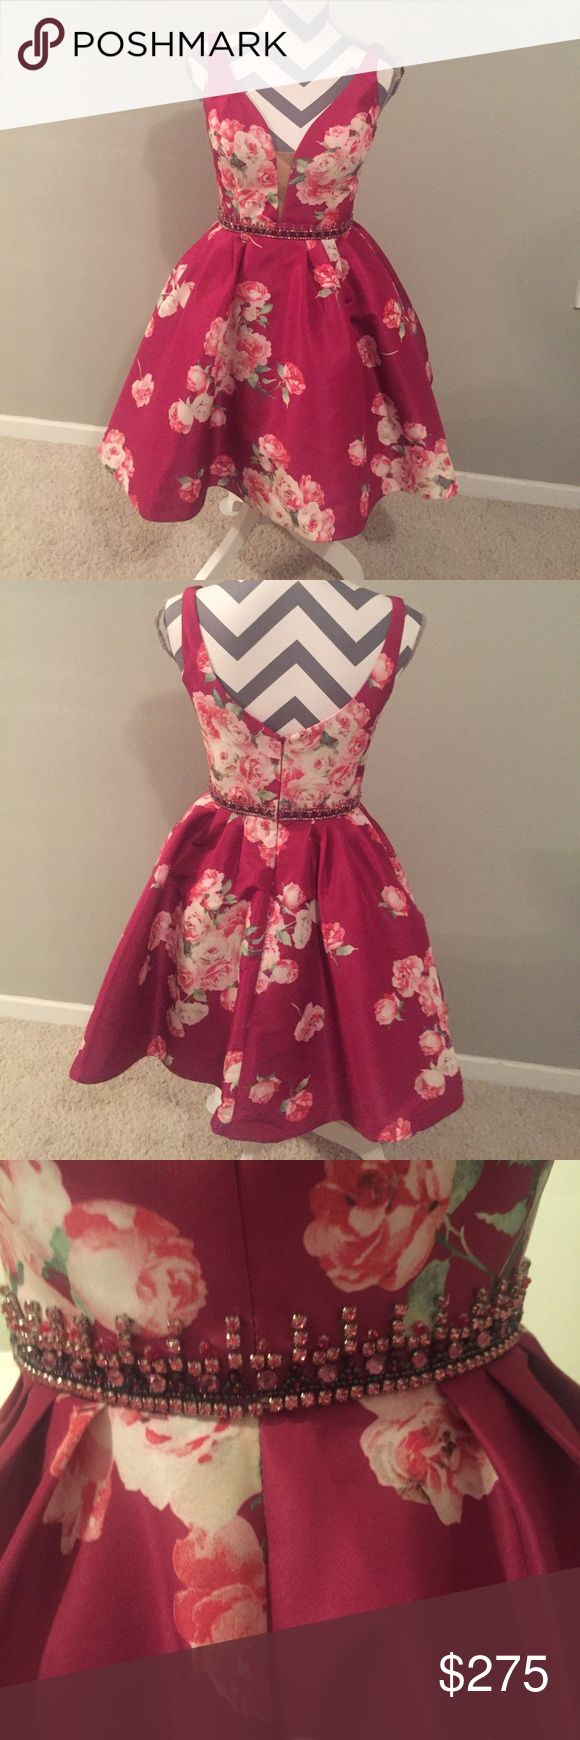 Short V-Neck Print Dress Sherri Hill Dress Fuchsia with pink and white roses, studded belt attached to dress  Will negotiate on price Sherri Hill Dresses Prom